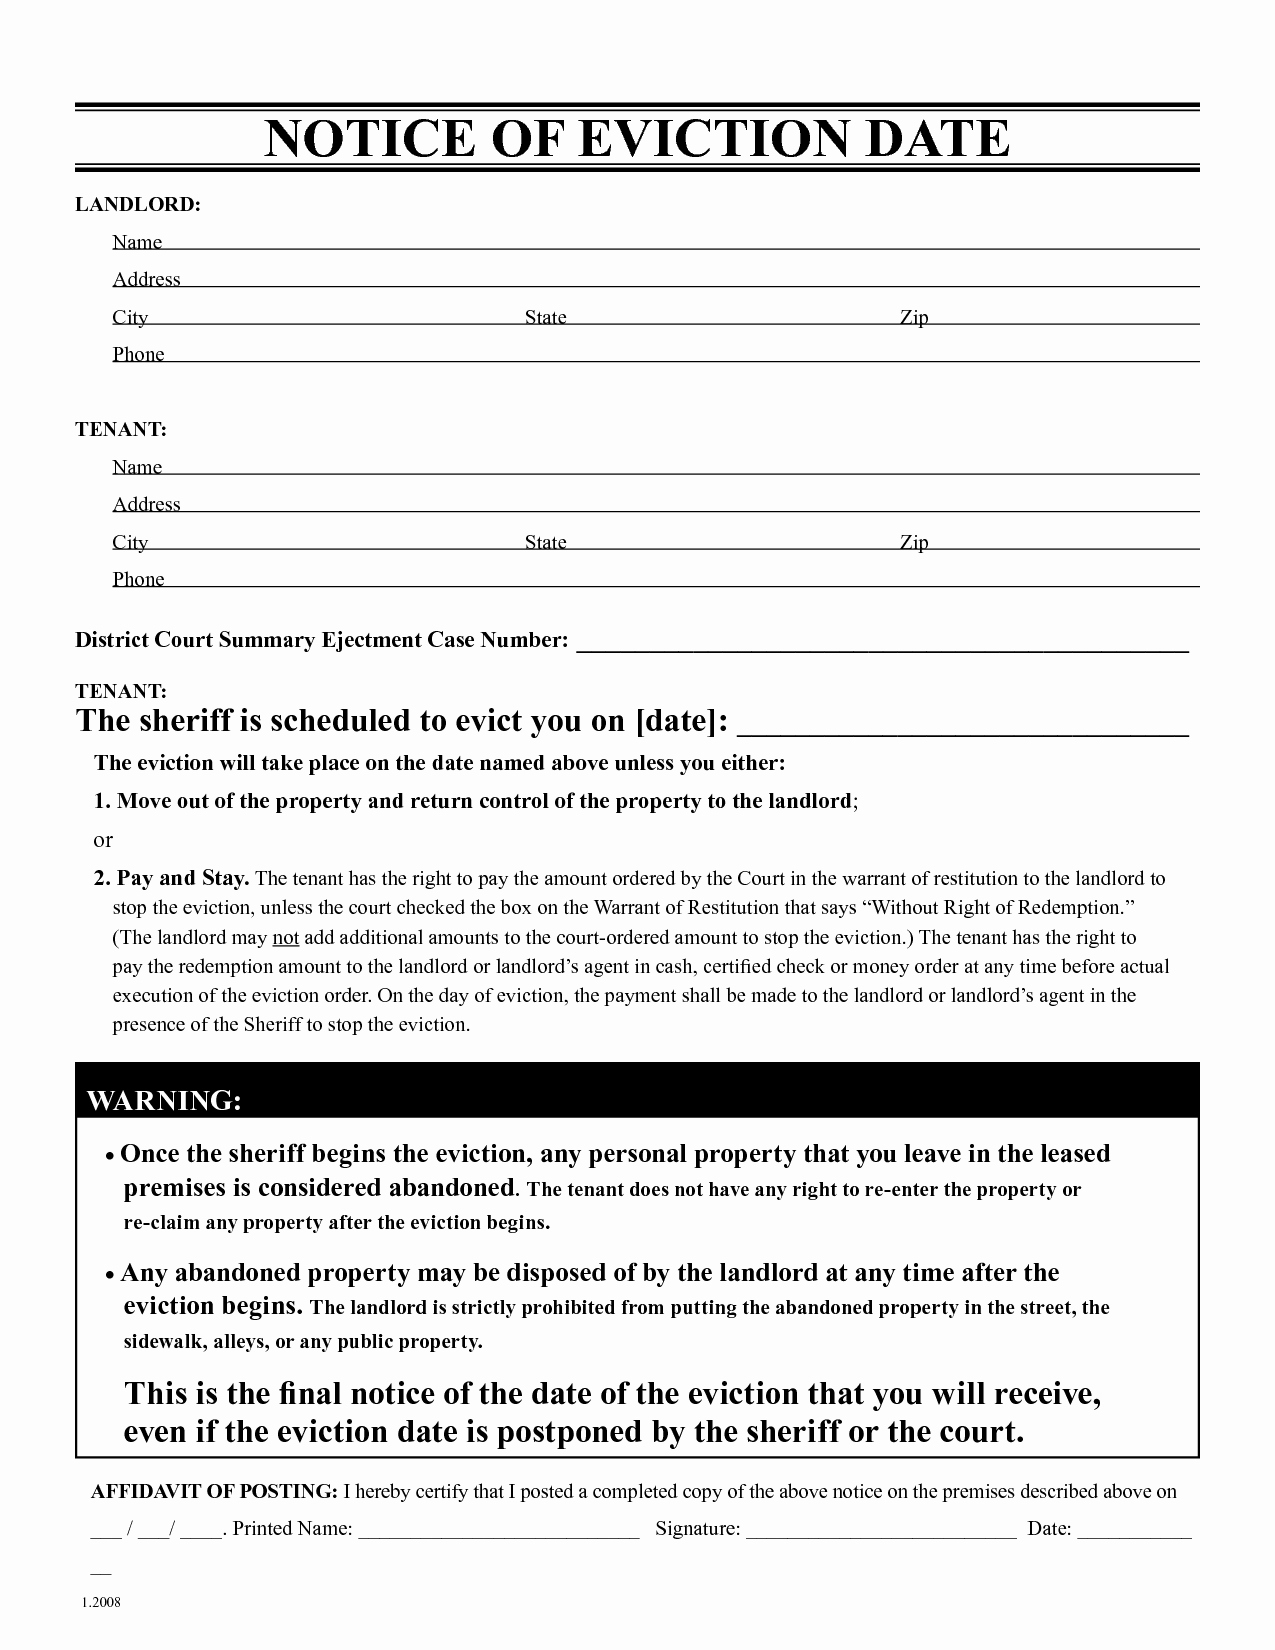 Tenant Eviction Letter Template - 30 Day Notice to Landlord Template Fresh 3 Day Eviction Notice